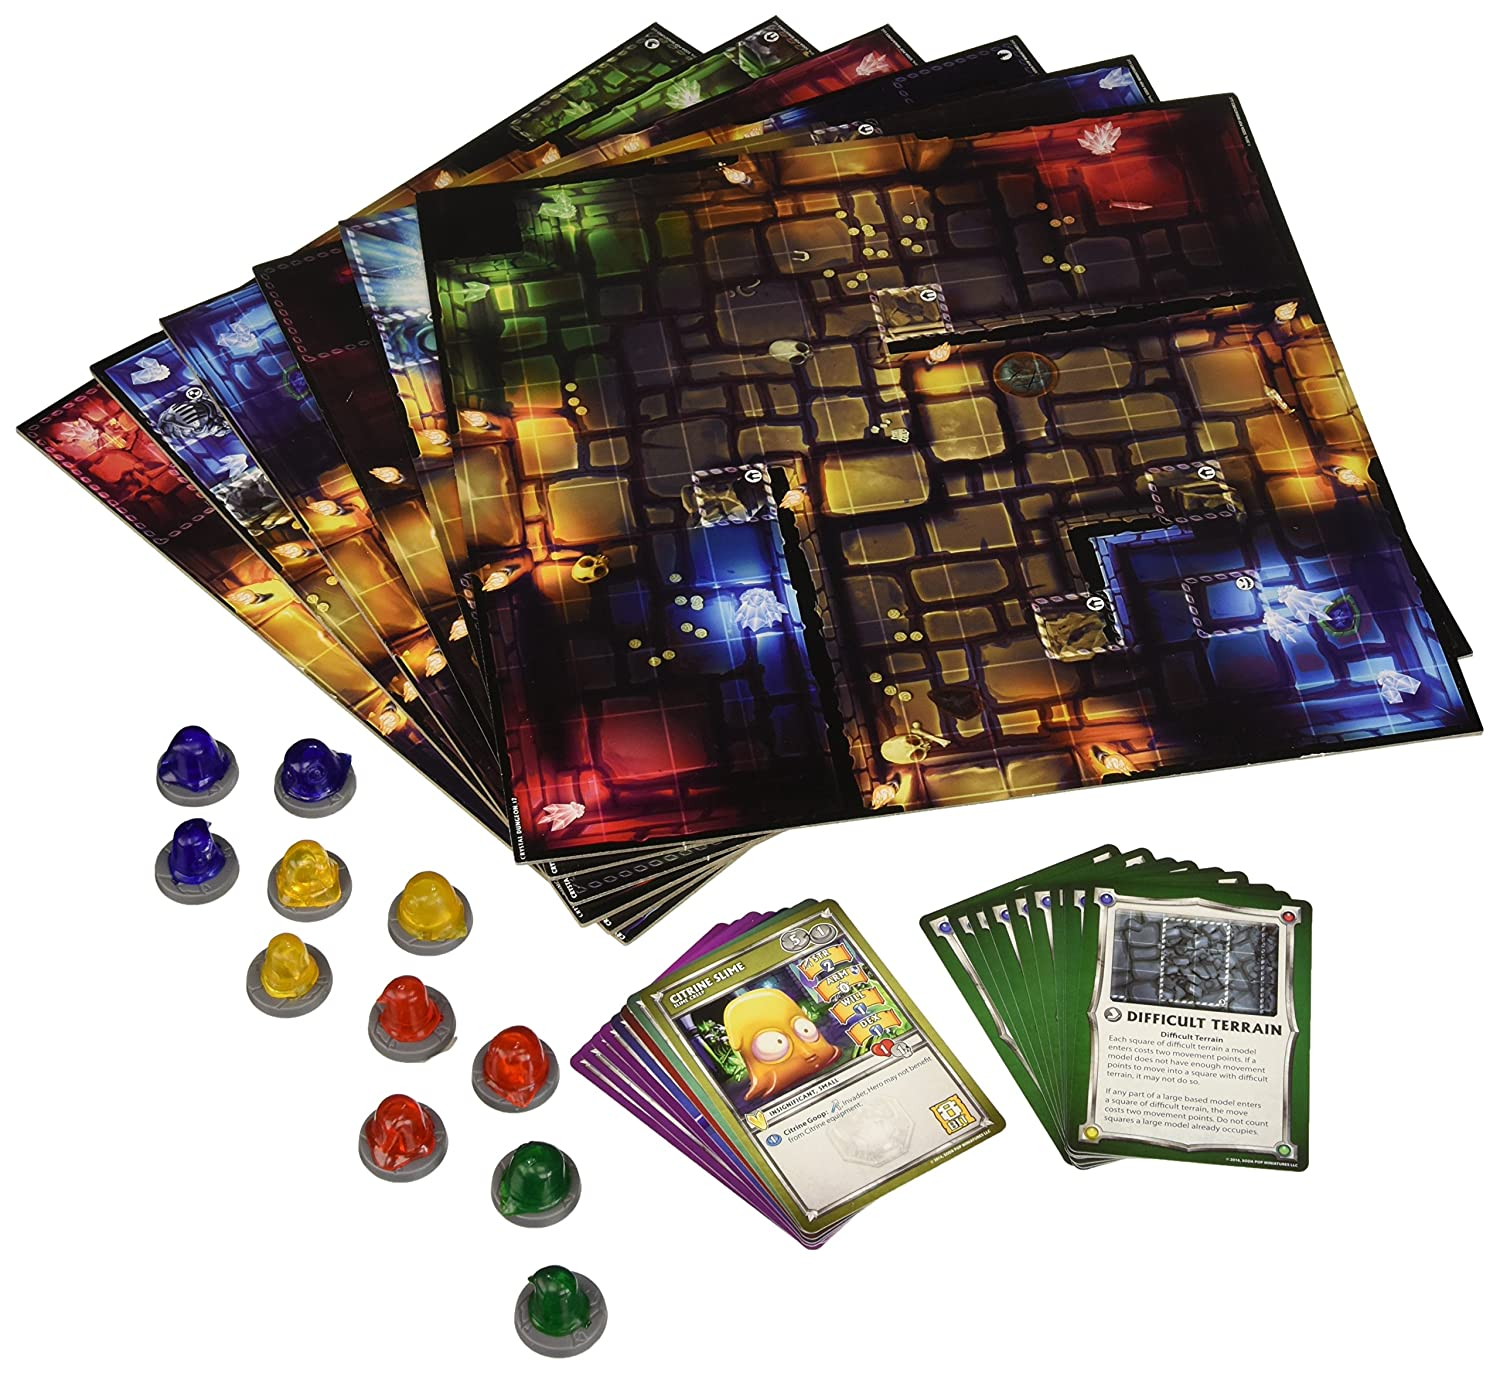 Super Dungeon erkunden V2 - Dungeon Tiles: Dungeon von Crystalia